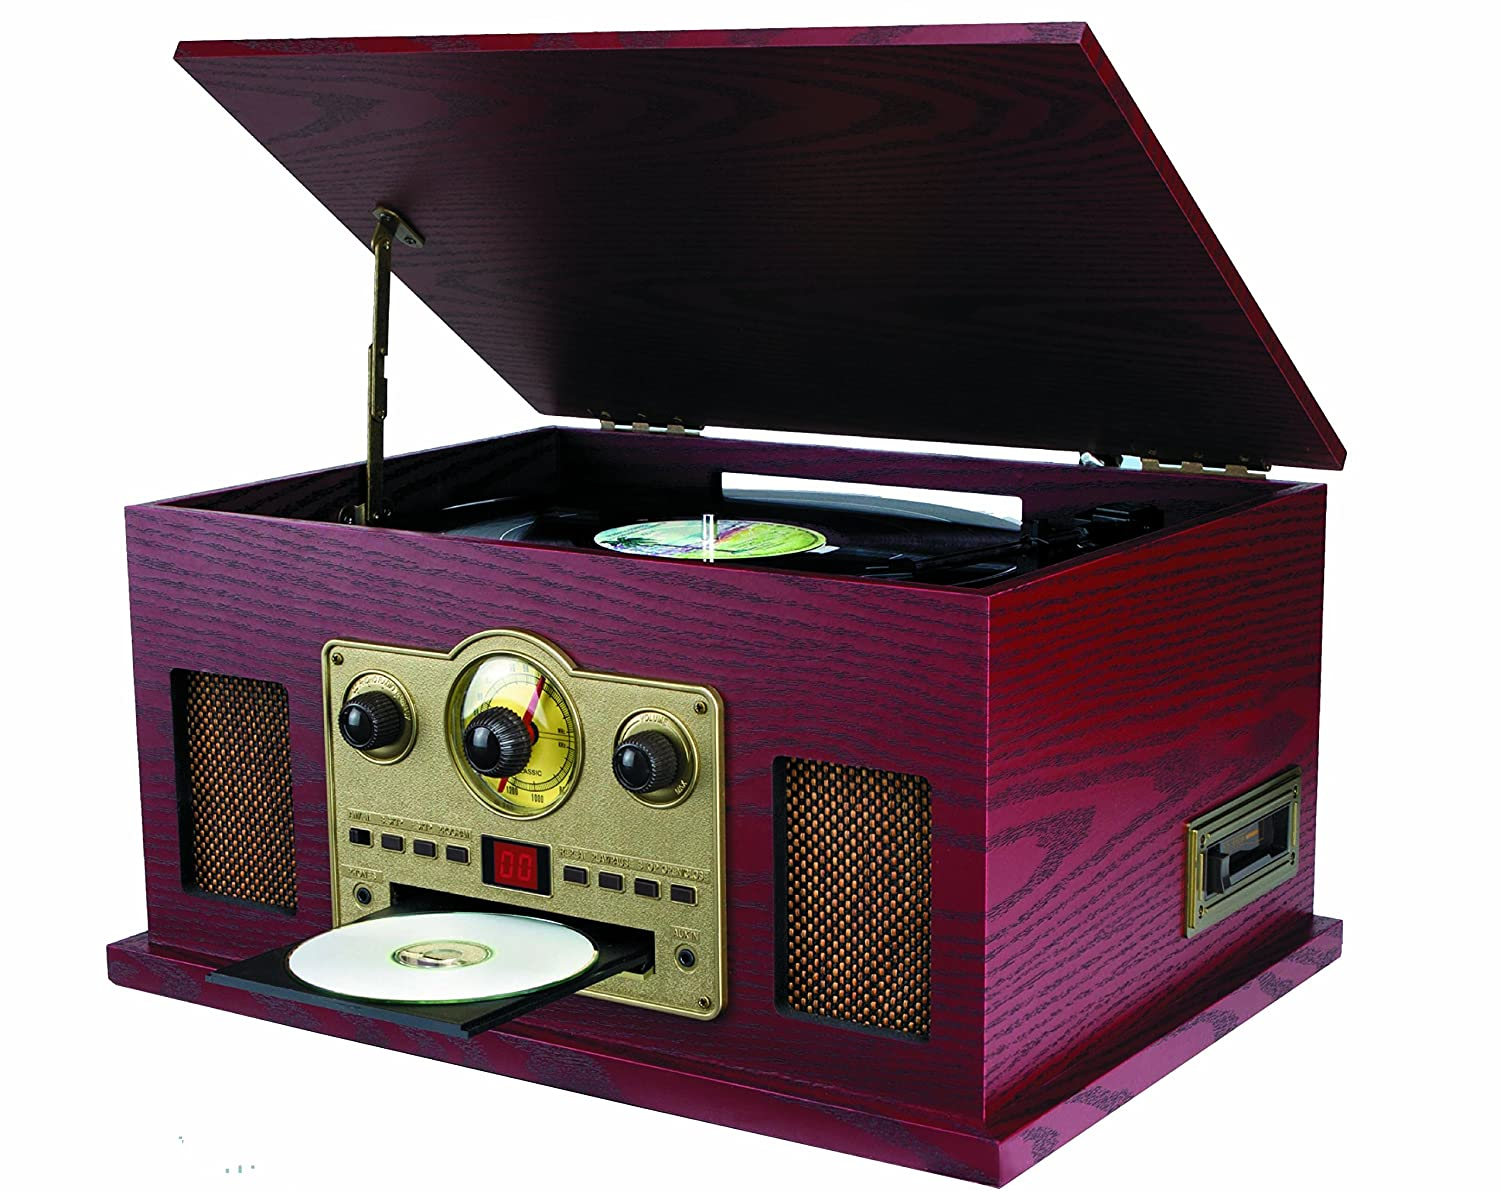 Sylvania SRCD838 5-in-1 Nostalgic Turntable with CD, Cassette, Radio, Aux-In